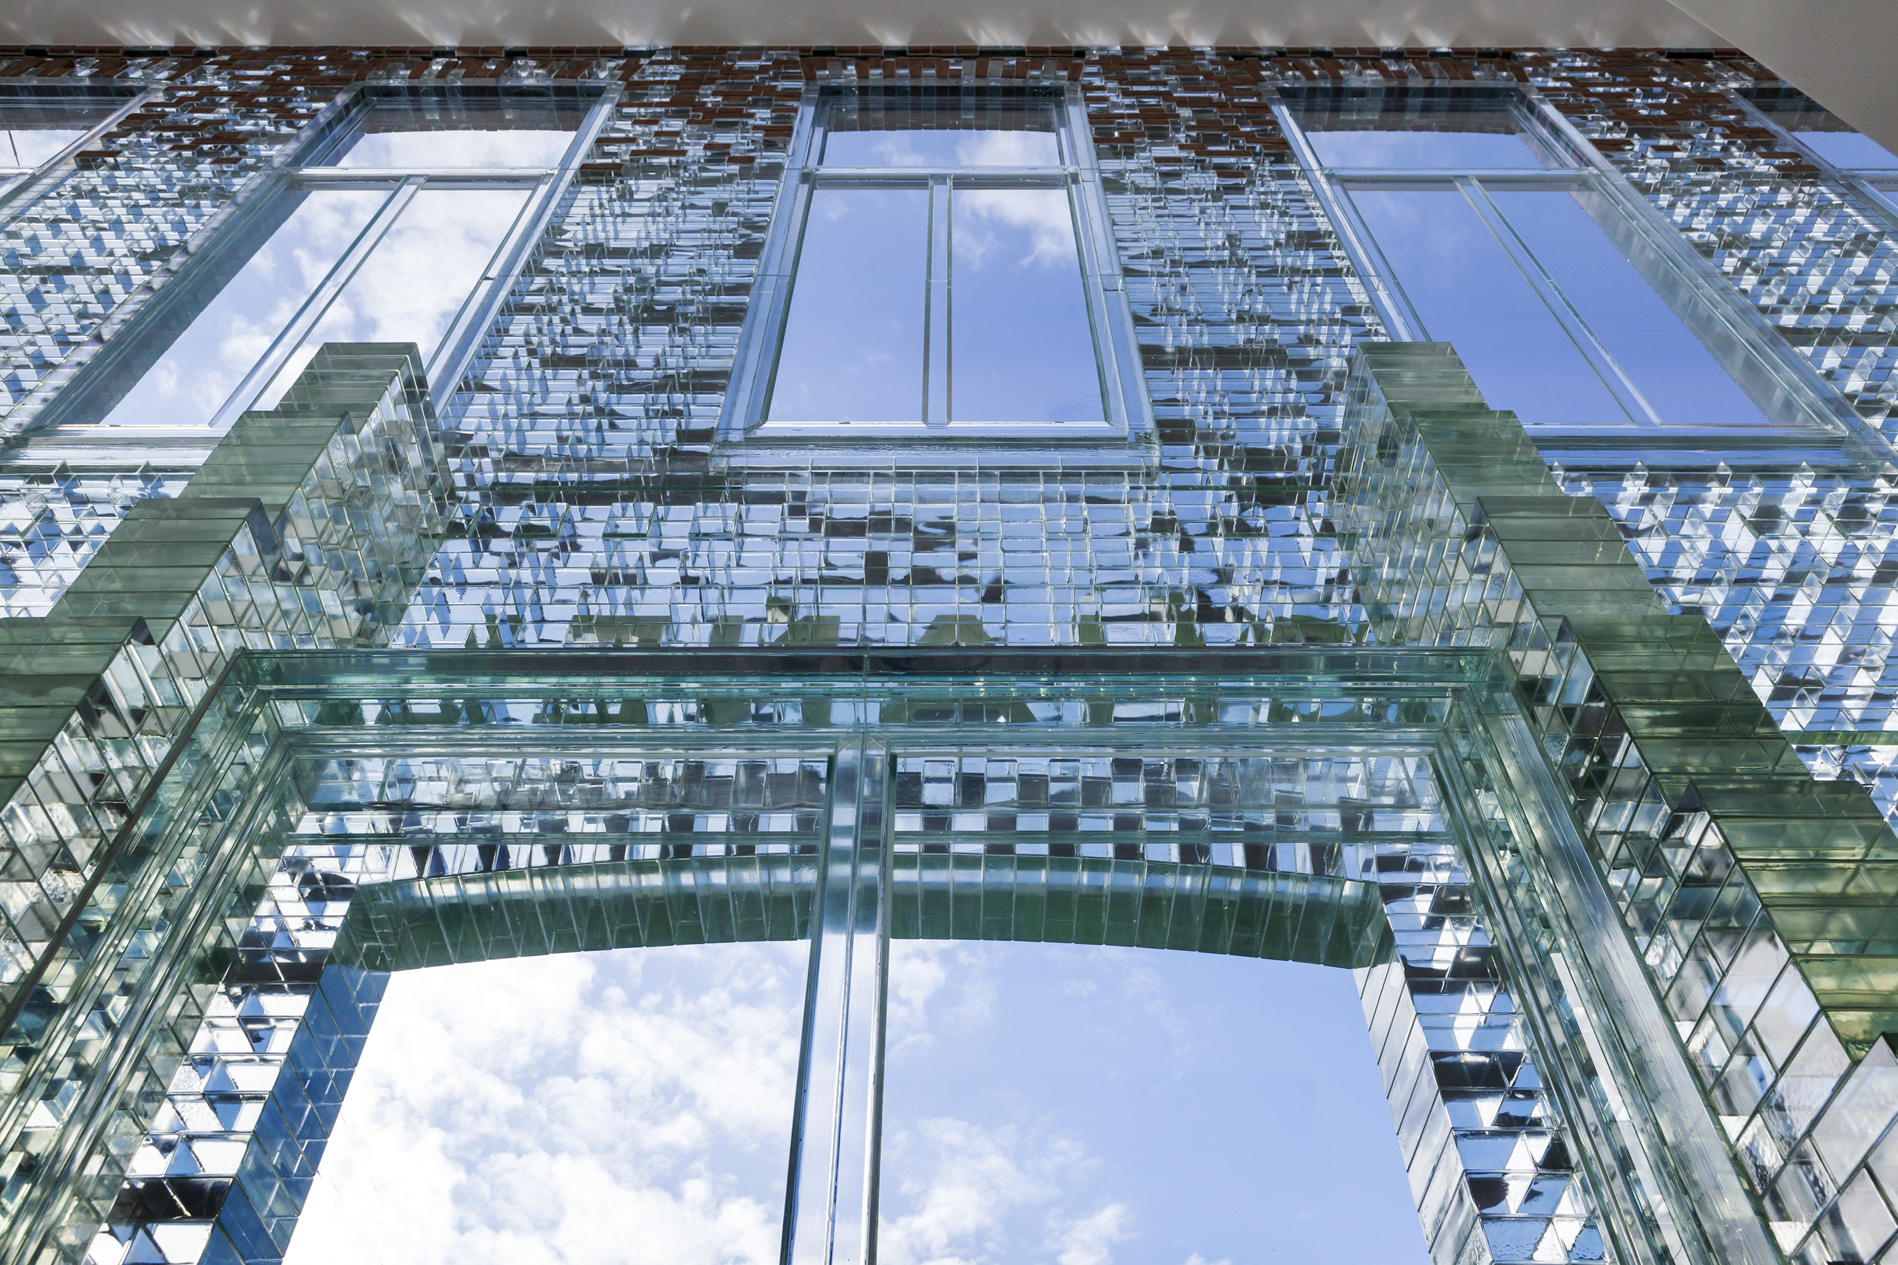 Glass Bricks in Crystal Houses nominated for Dutch Design Award - Vote now!